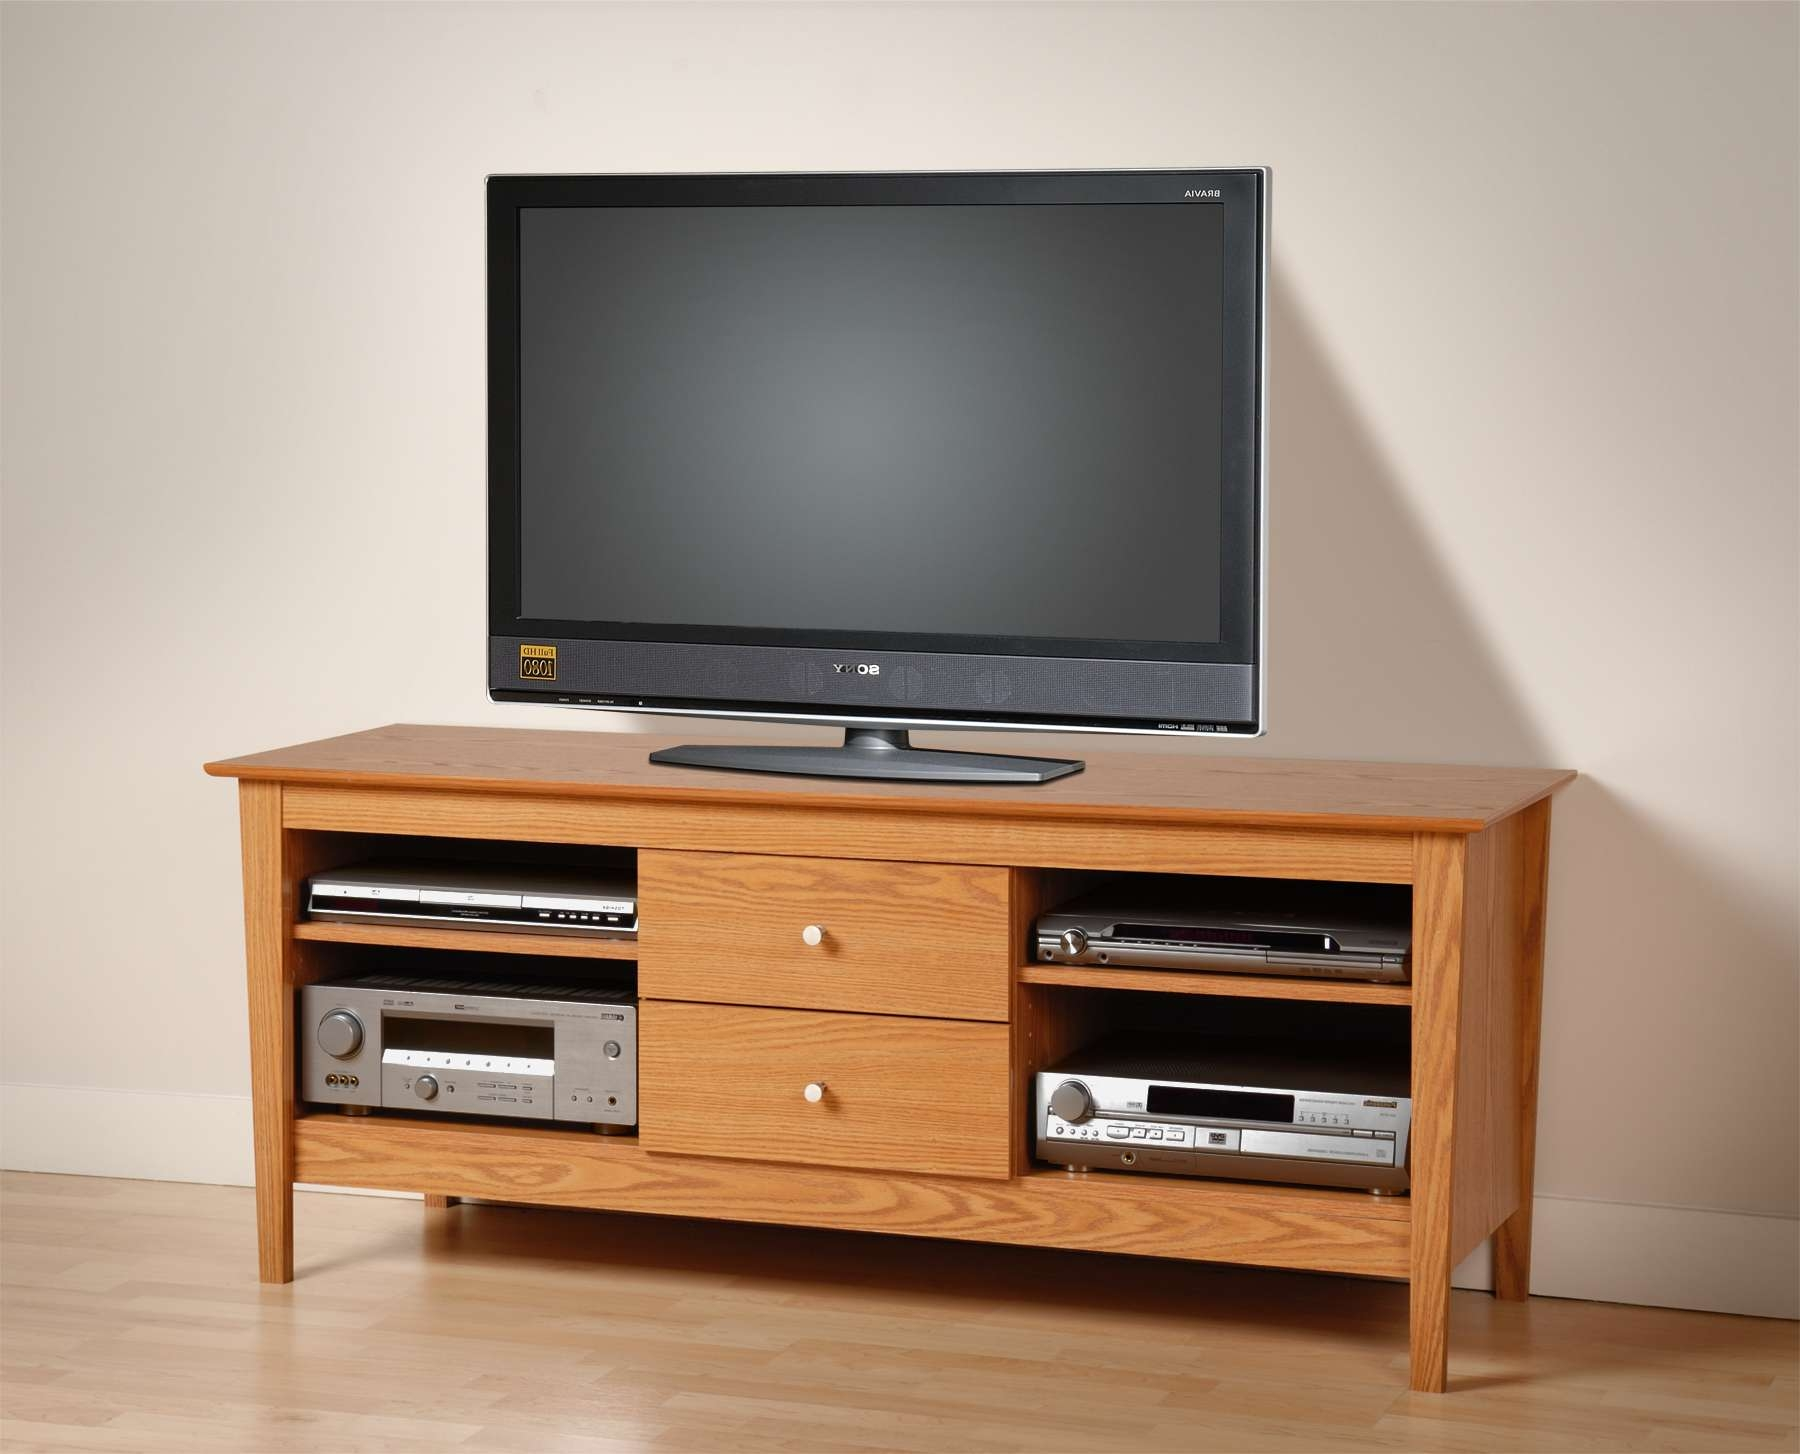 Ideal Oak Tv Stand For Flat Screen – Home Decorreisa Intended For Oak Tv Cabinets For Flat Screens (View 5 of 20)